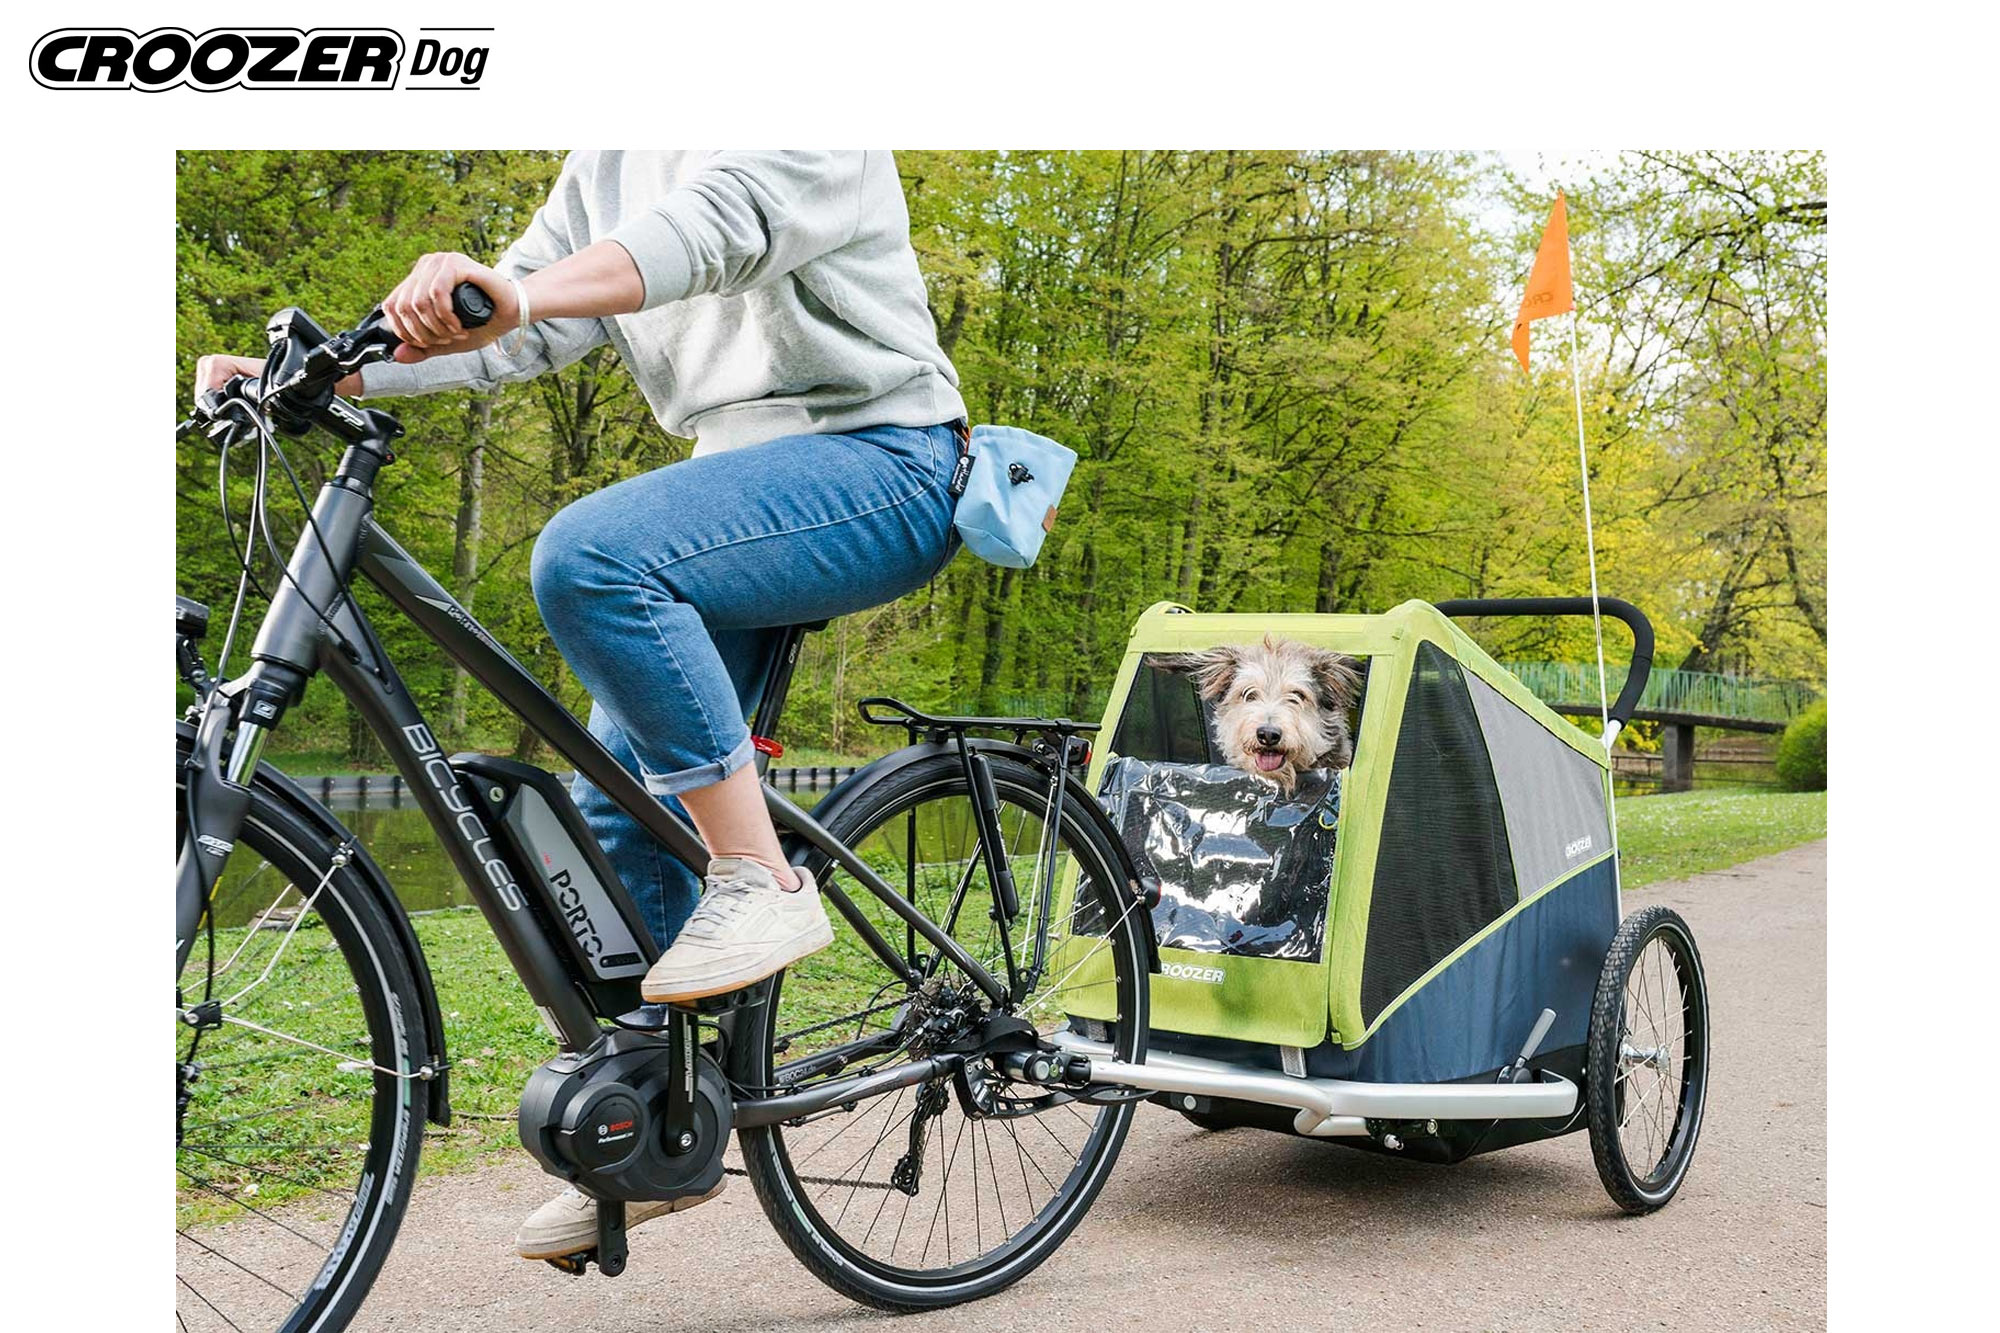 CROOZER Dog Jokke, Grasshopper green - Hundetransportanhänger